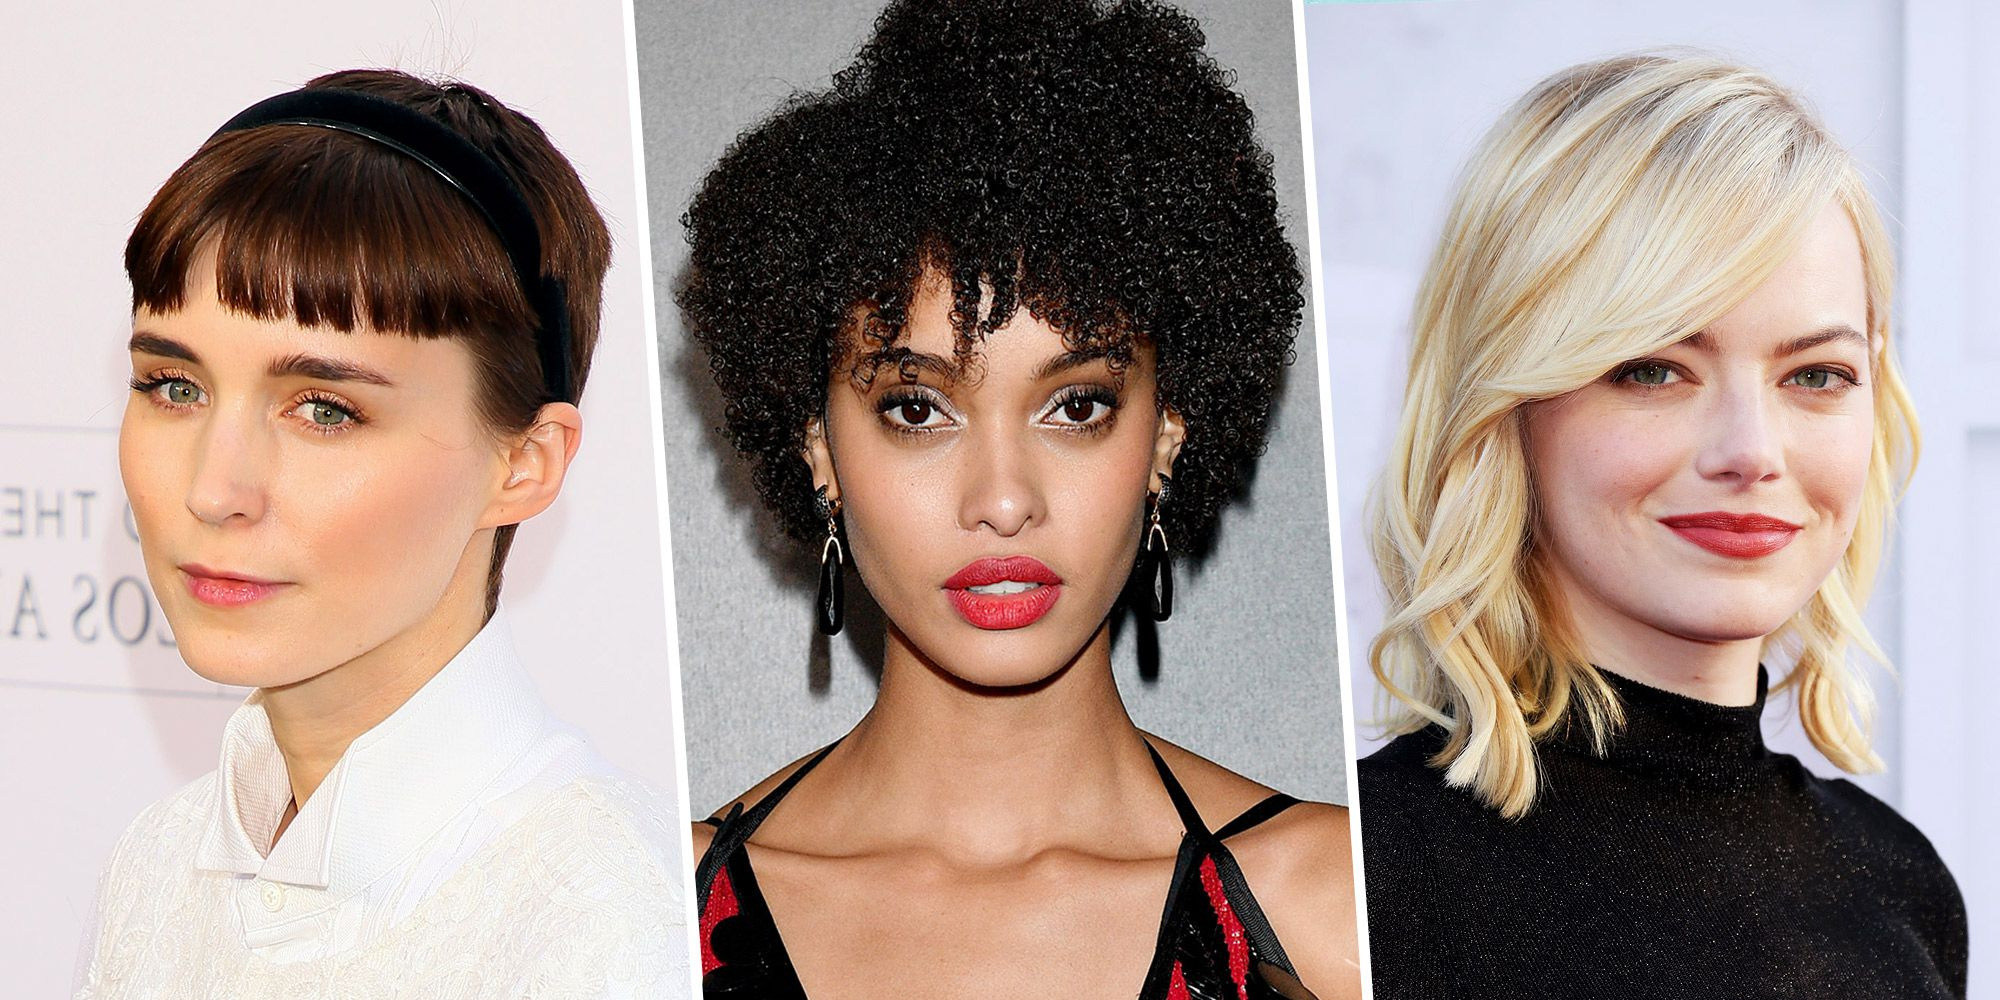 65 Best Short Hairstyles, Haircuts, And Short Hair Ideas For 2018 Intended For Trendy Short Hairstyles For Thin Hair (View 23 of 25)